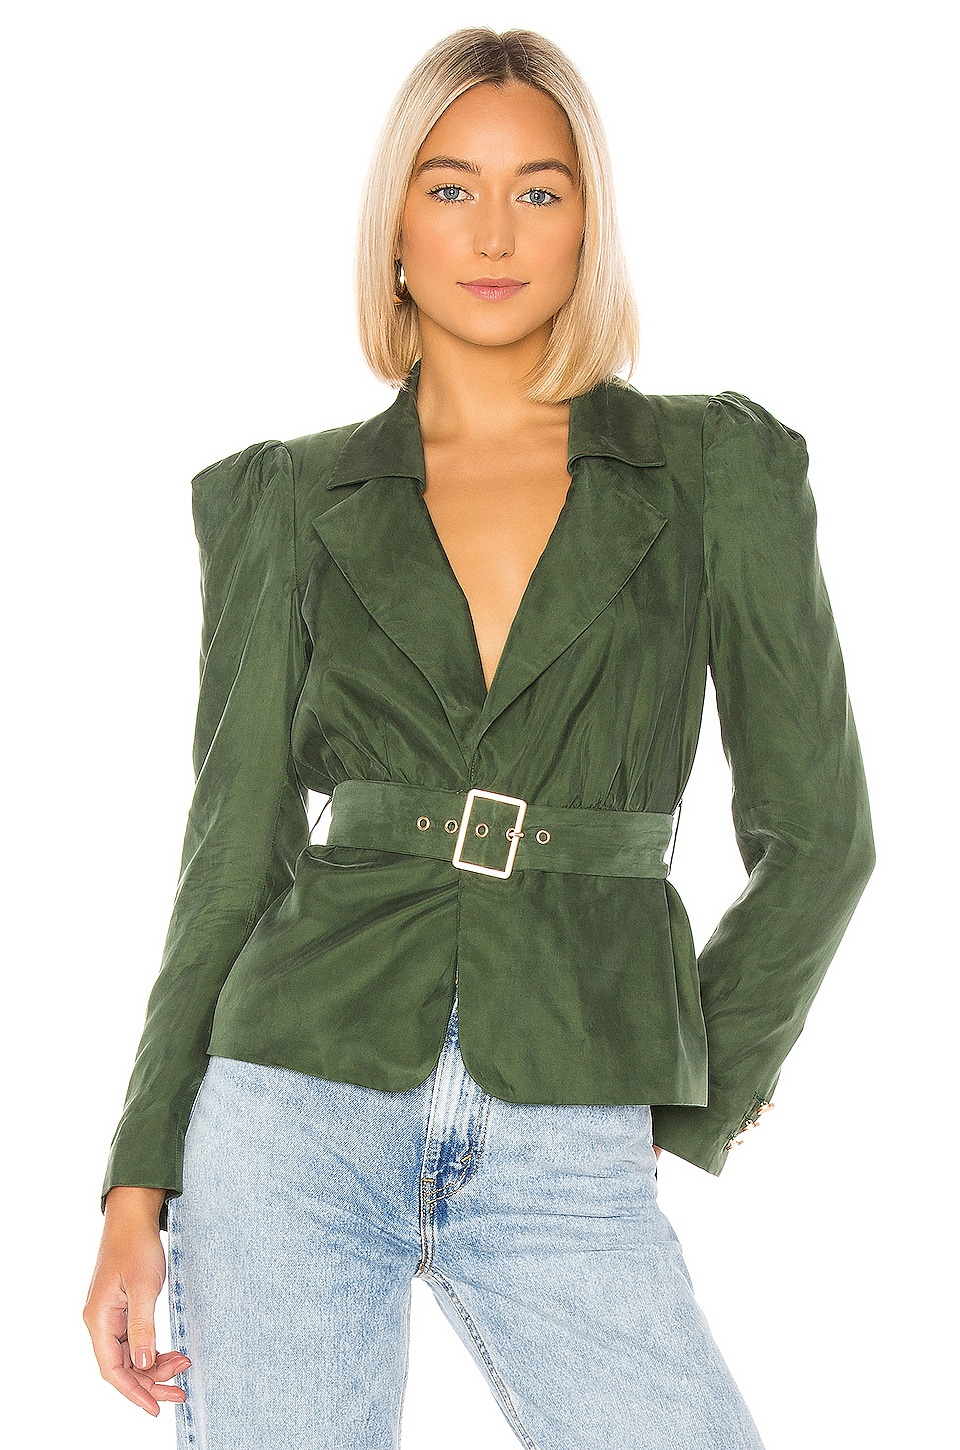 House of Harlow 1960 X REVOLVE Fernanda Jacket in Green